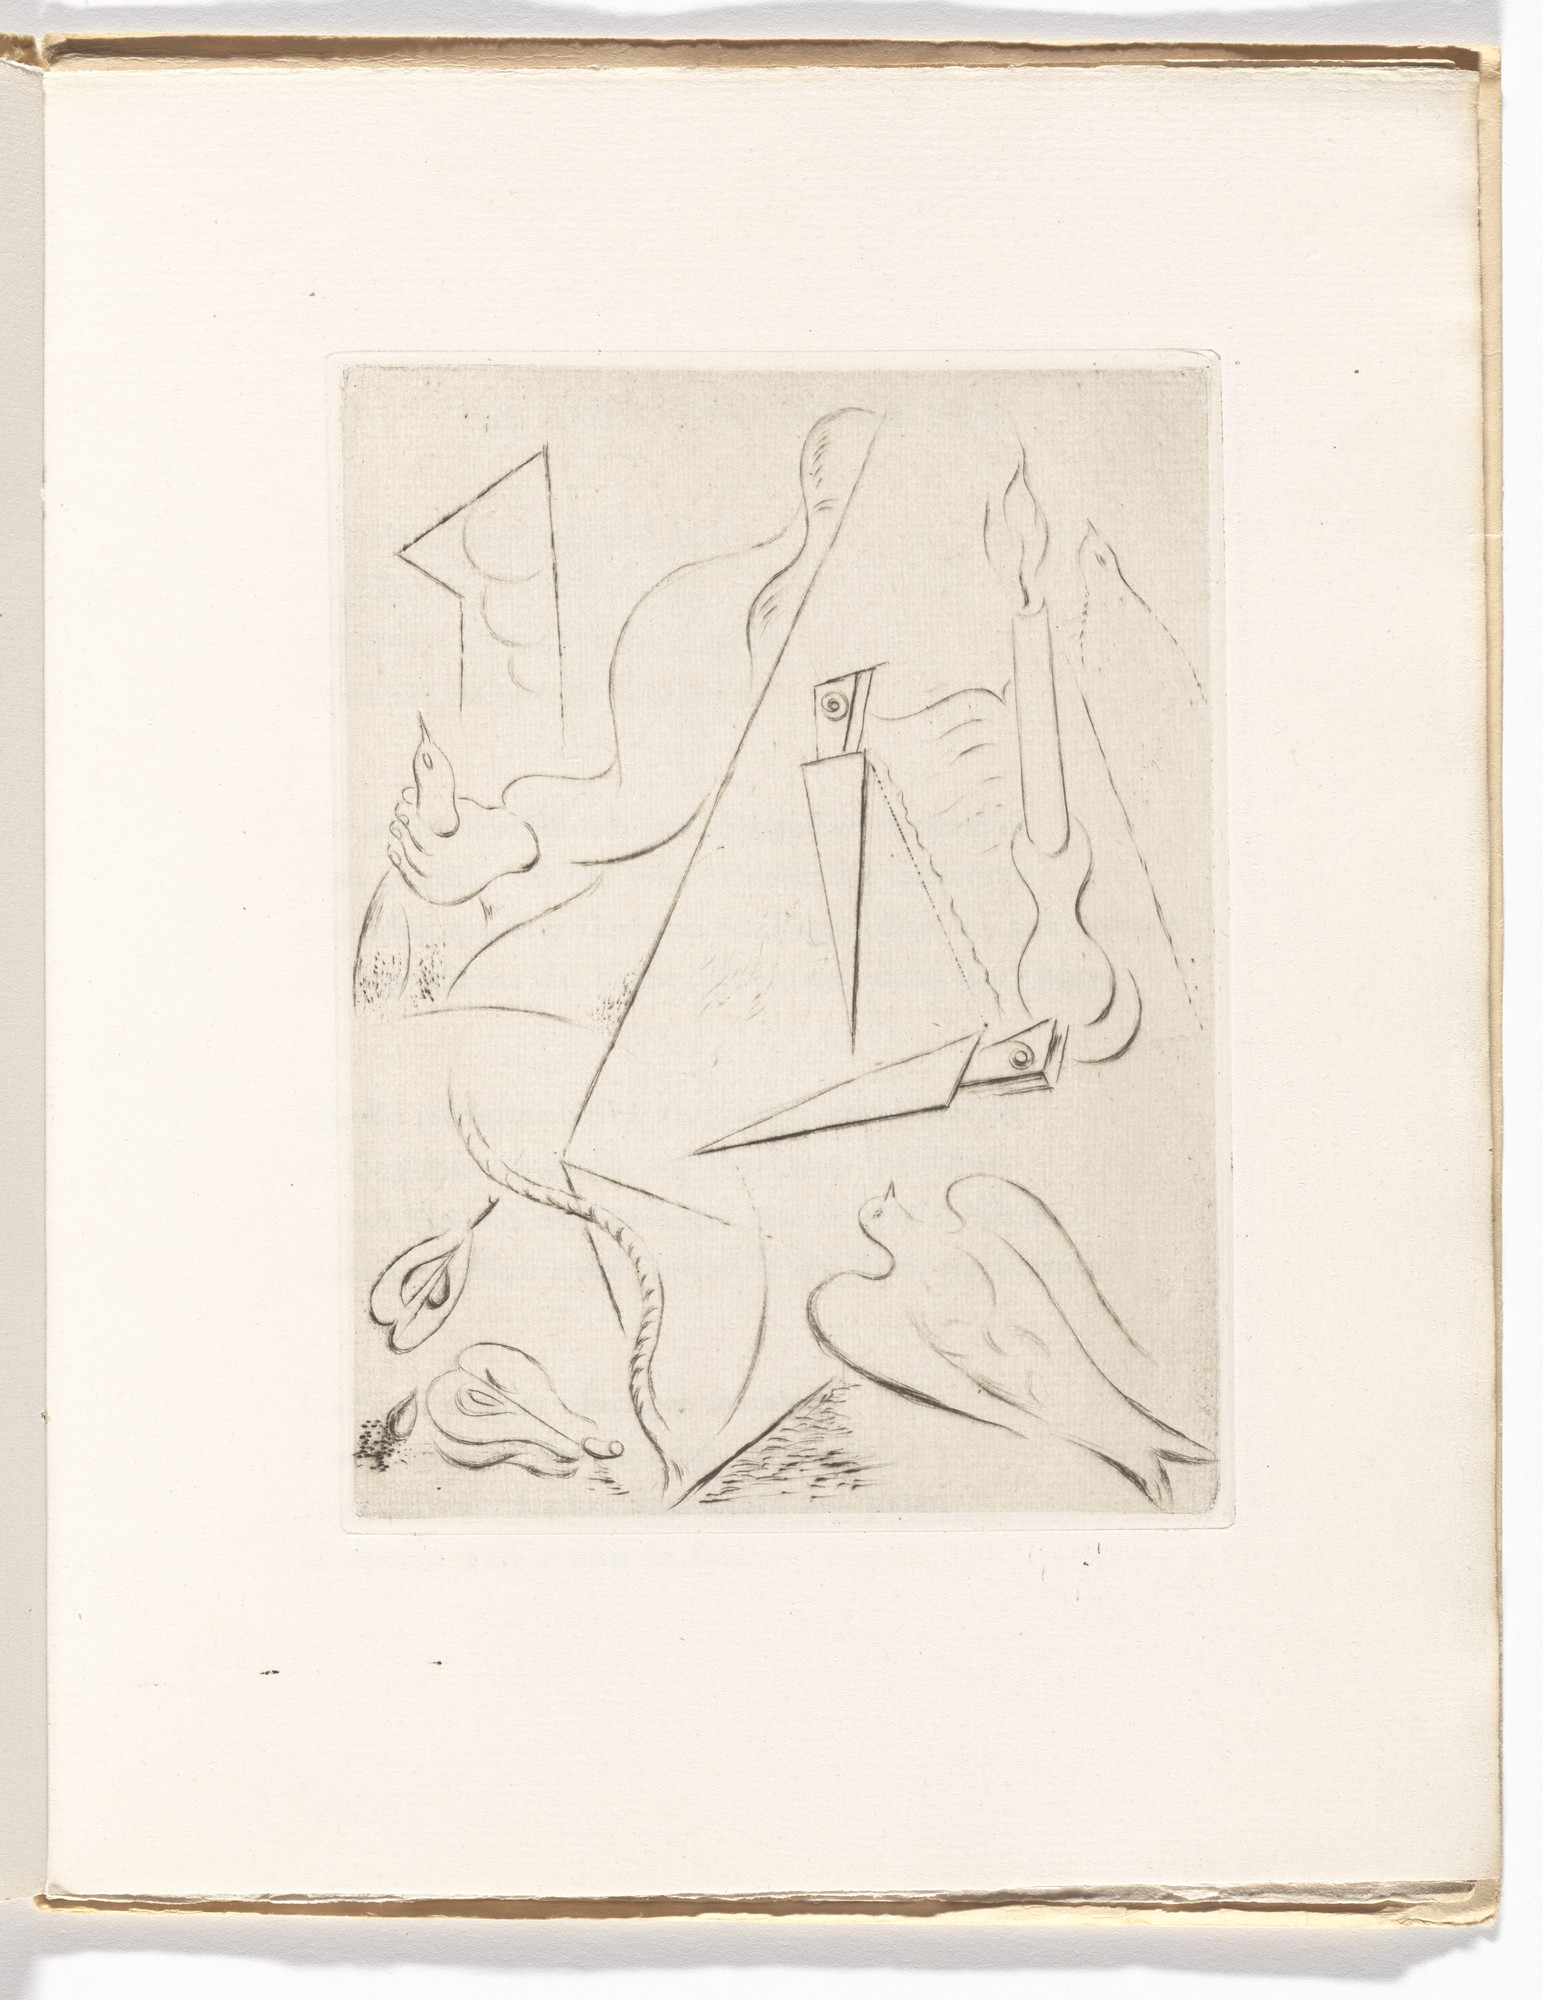 André Masson. Plate (folio 8) from Soleils bas. 1924